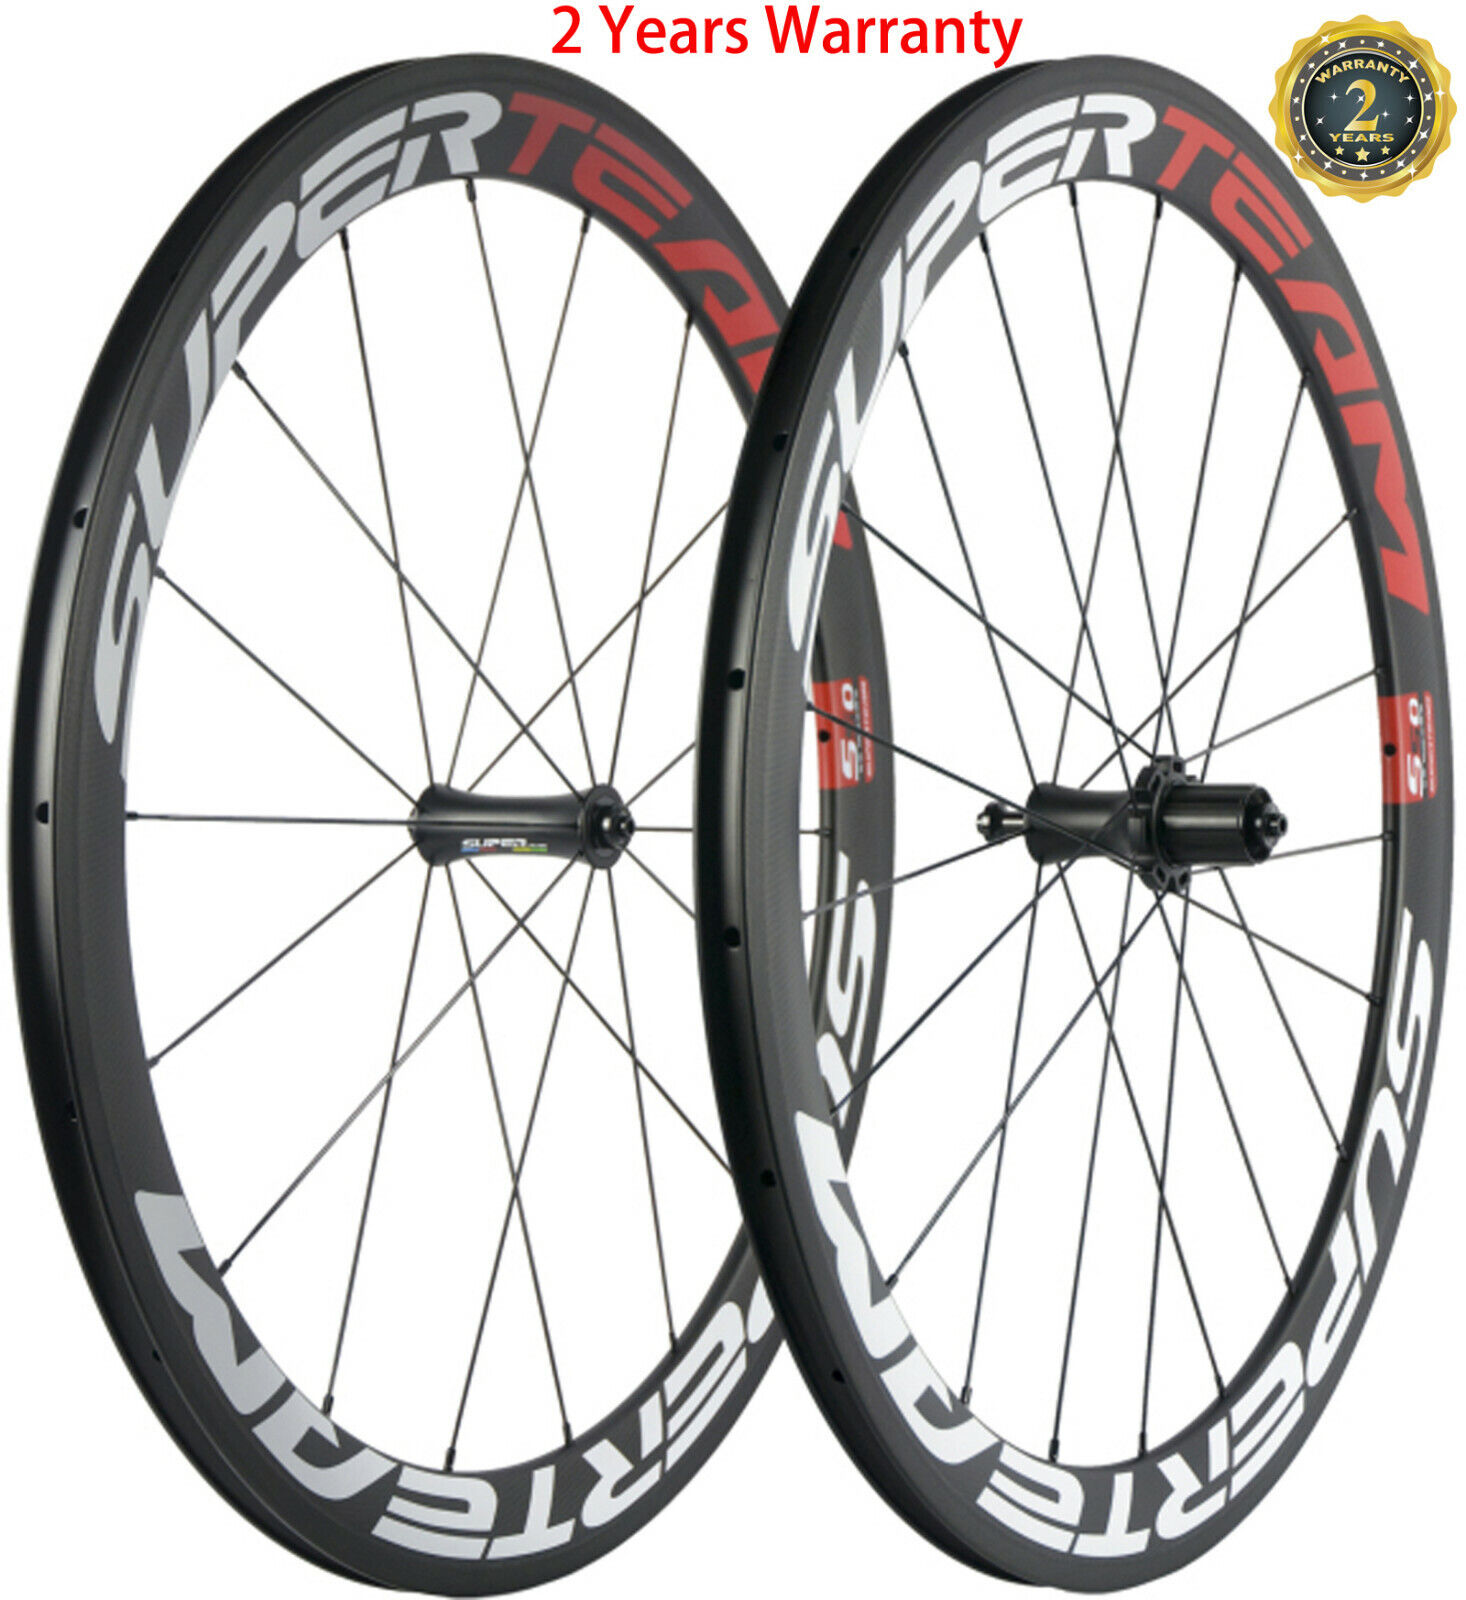 50mm Carbon Wheels 25mm Cyclocross Bicycle  Carbon Bike Wheelset 700C R7 Hub Bike  hot sale online